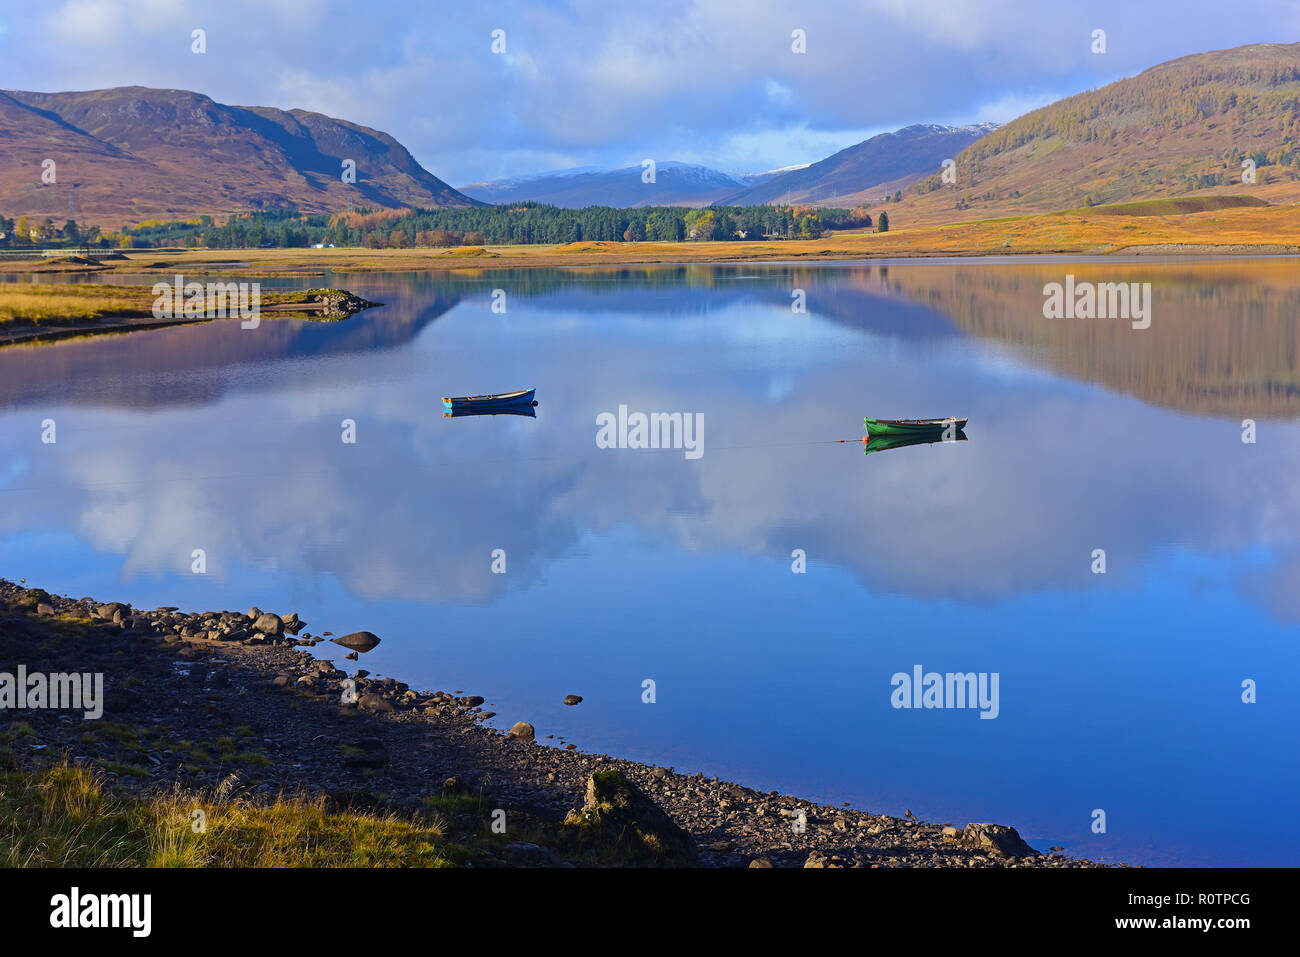 A quiet early morning on the tranquil Spey Dam in Glen Sherro near Laggan, Newtonmore Strathspey Inverness-shire.  Scotland.UK. Stock Photo